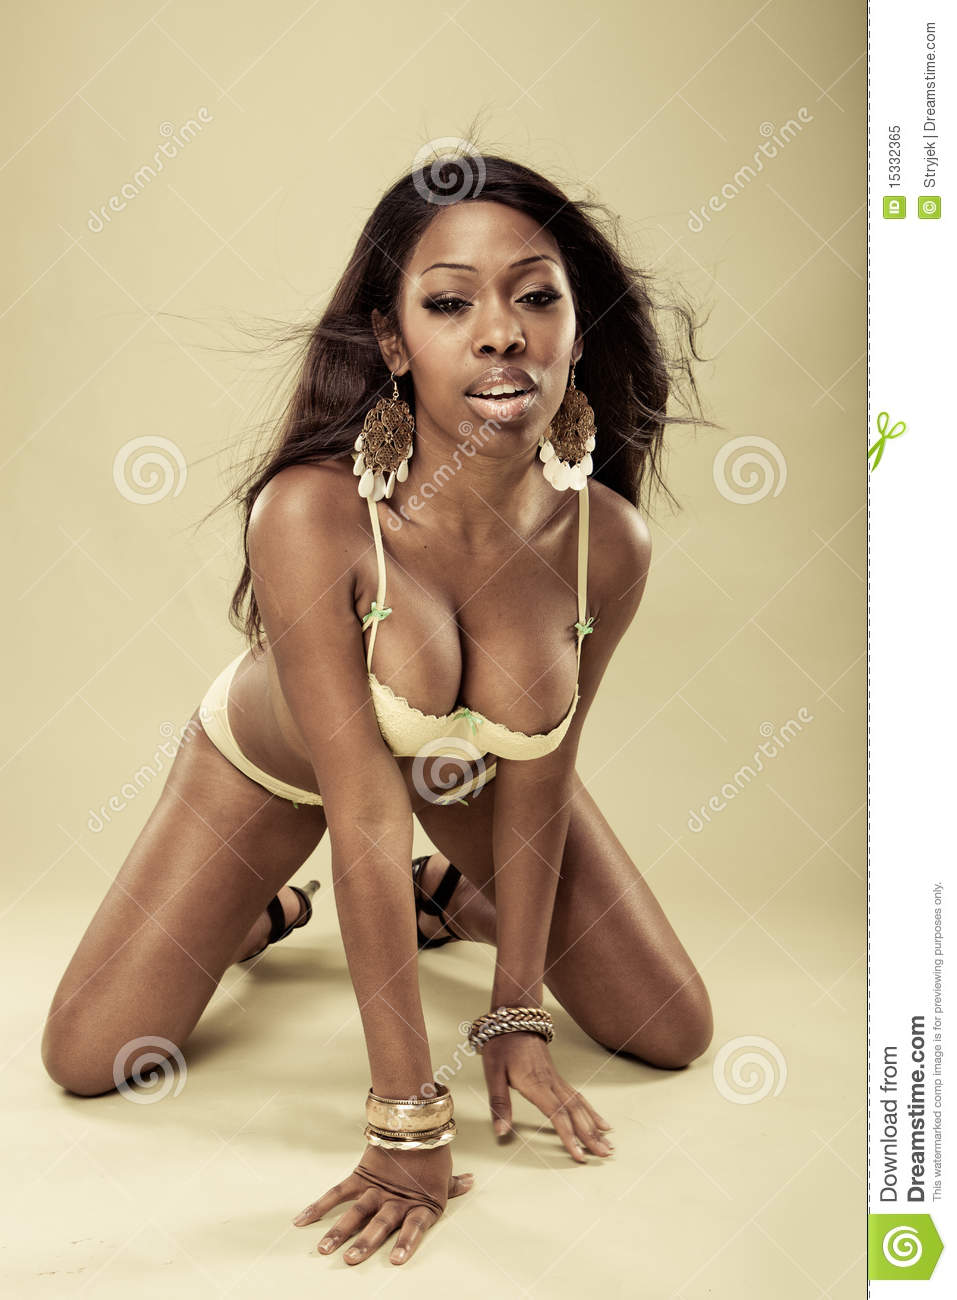 erotic african american photos graphics